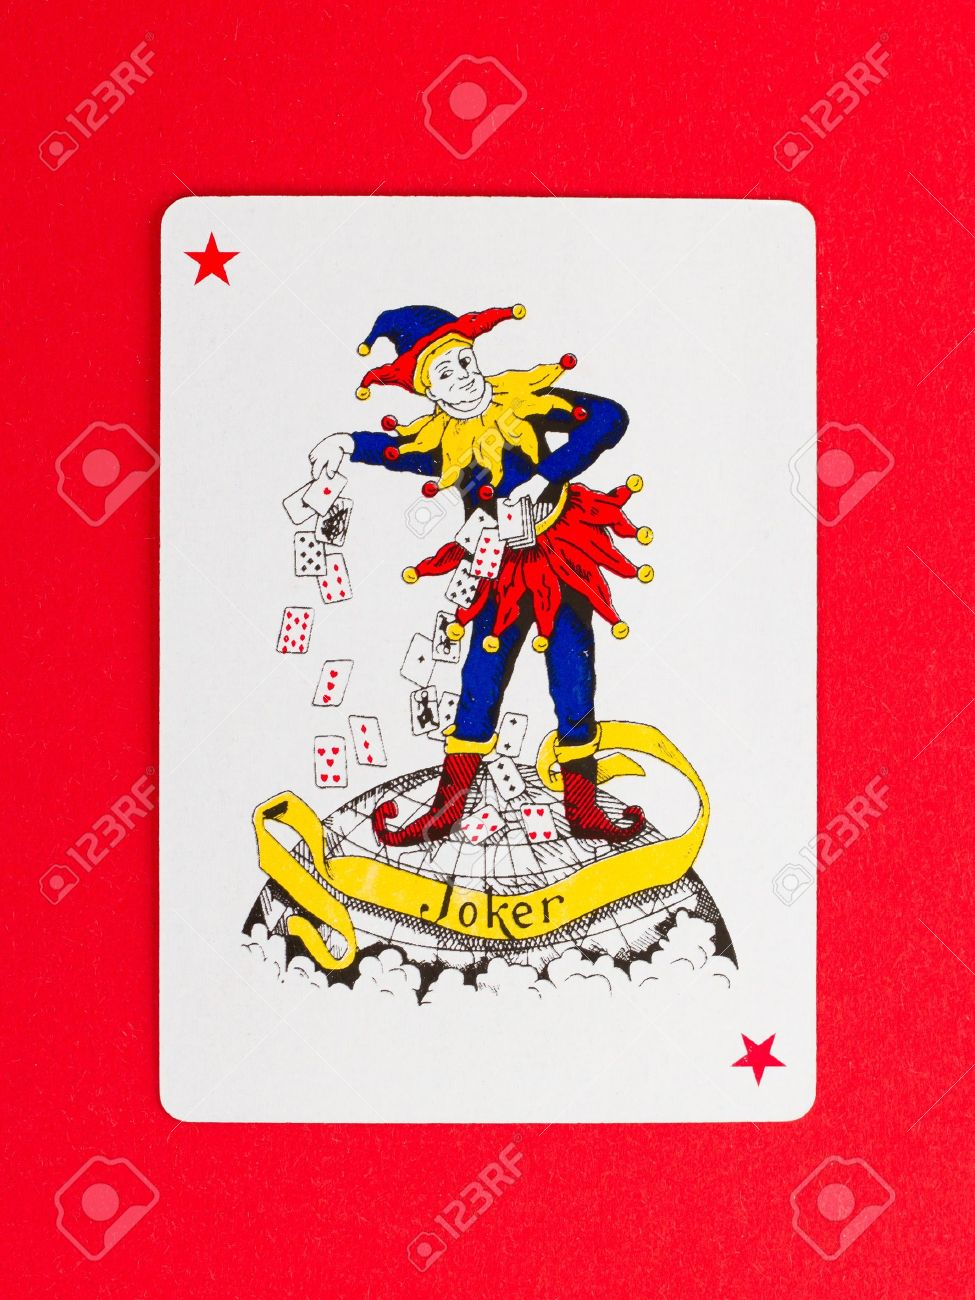 Playing card (joker) isolated on a red background Stock Photo - 13652028